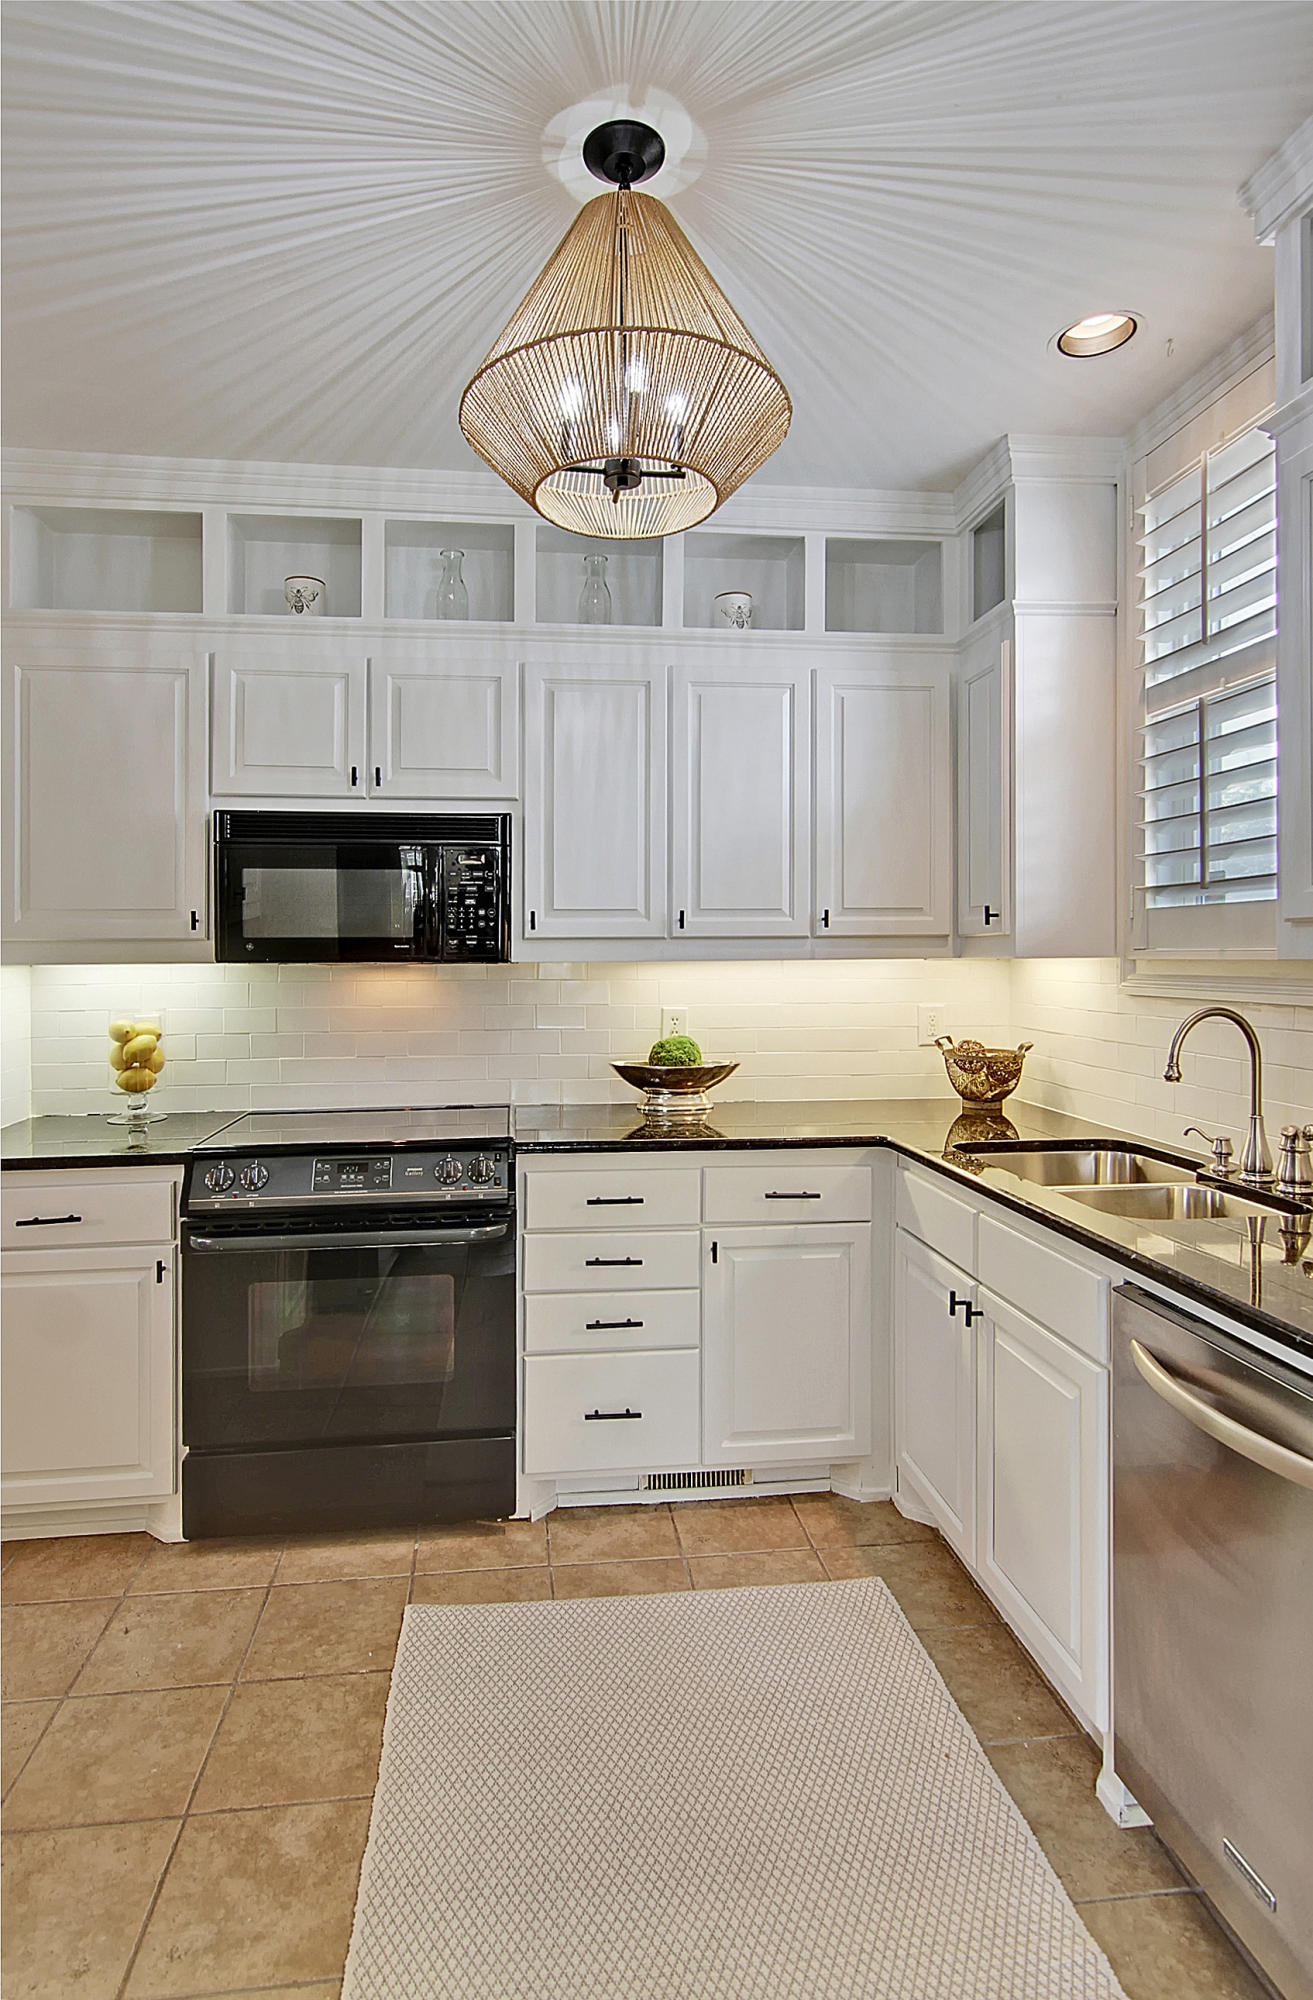 Harleston Village Condos For Sale - 7 West Street B, Charleston, SC - 20